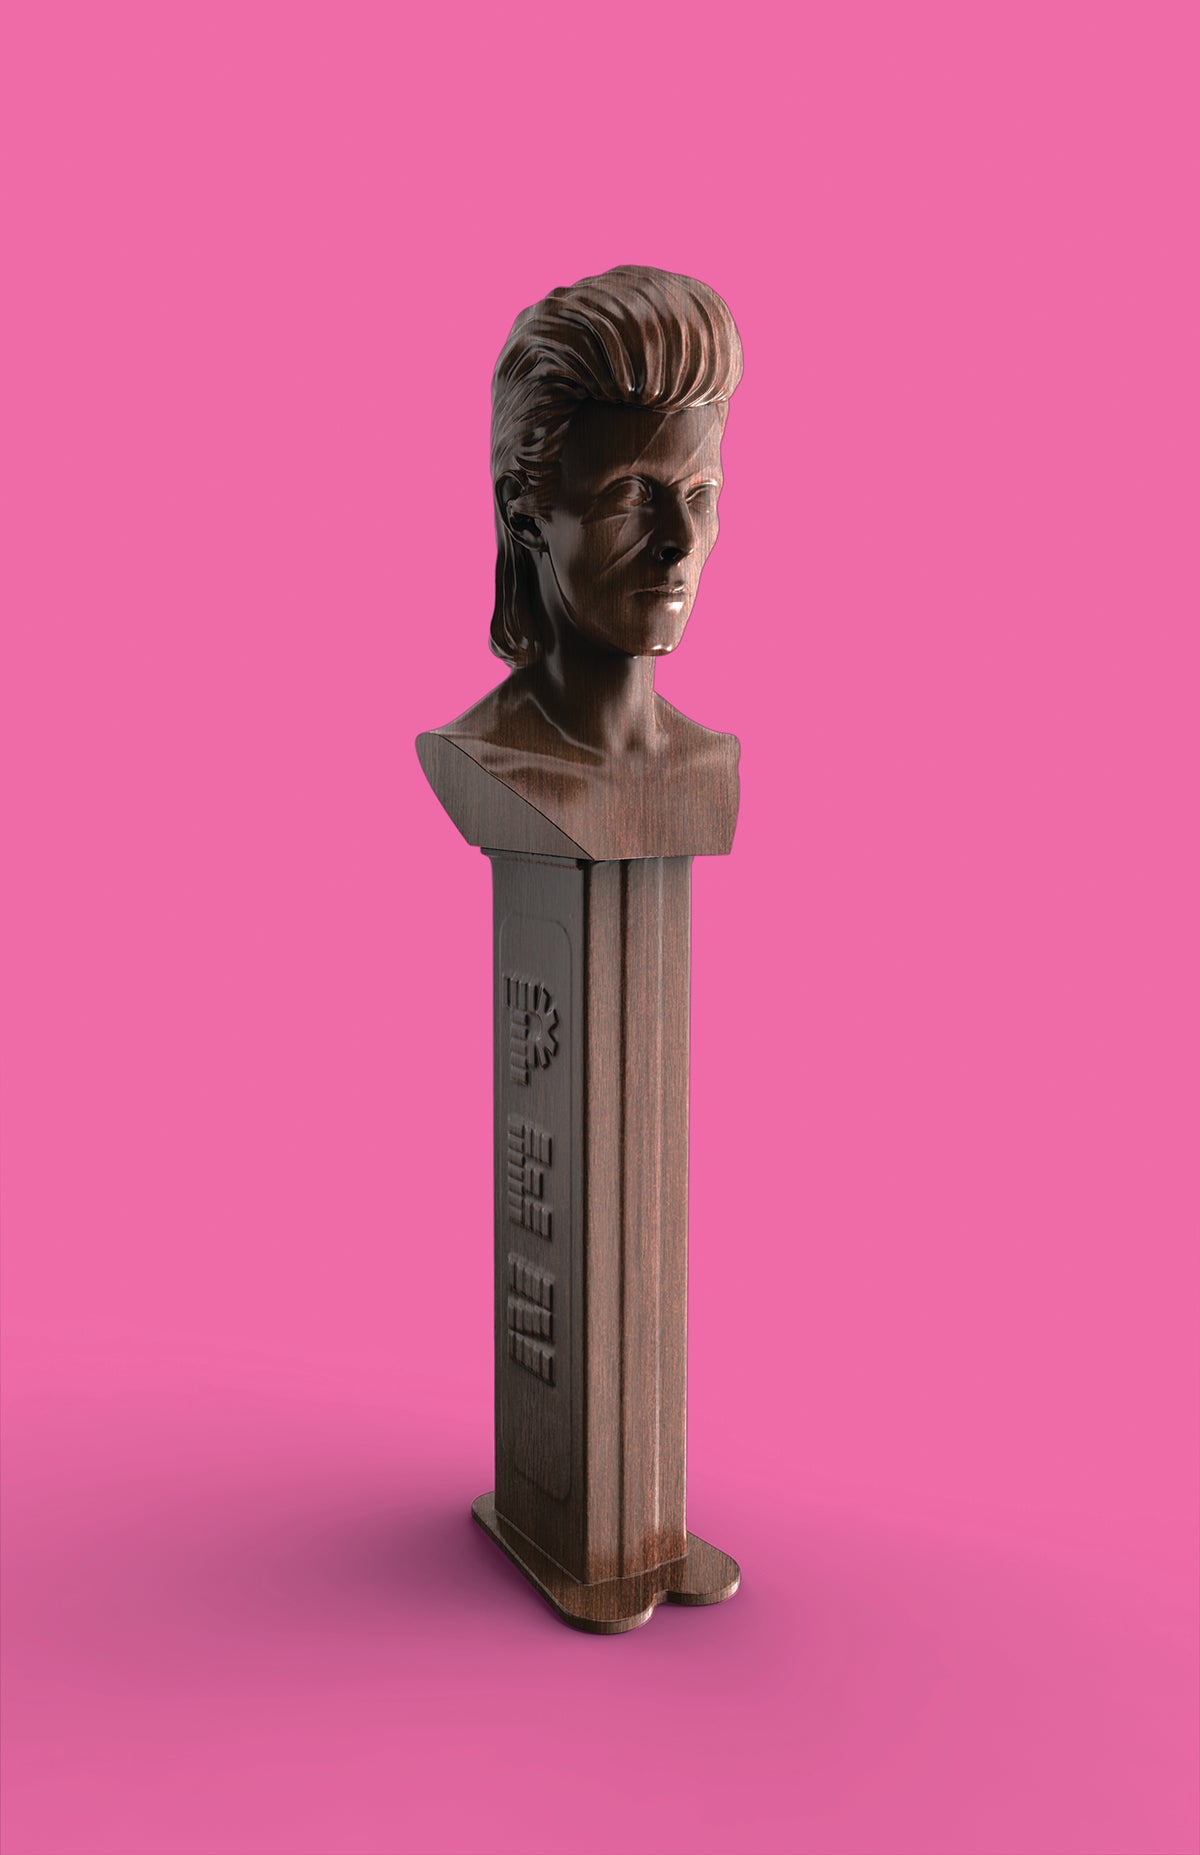 Pavlisko, Todd - Time Capsule #4, David Bowie (concept image), 2019, carved wood, metal, lock, undisclosed time capsule materials, dimensions variable_sm.jpg